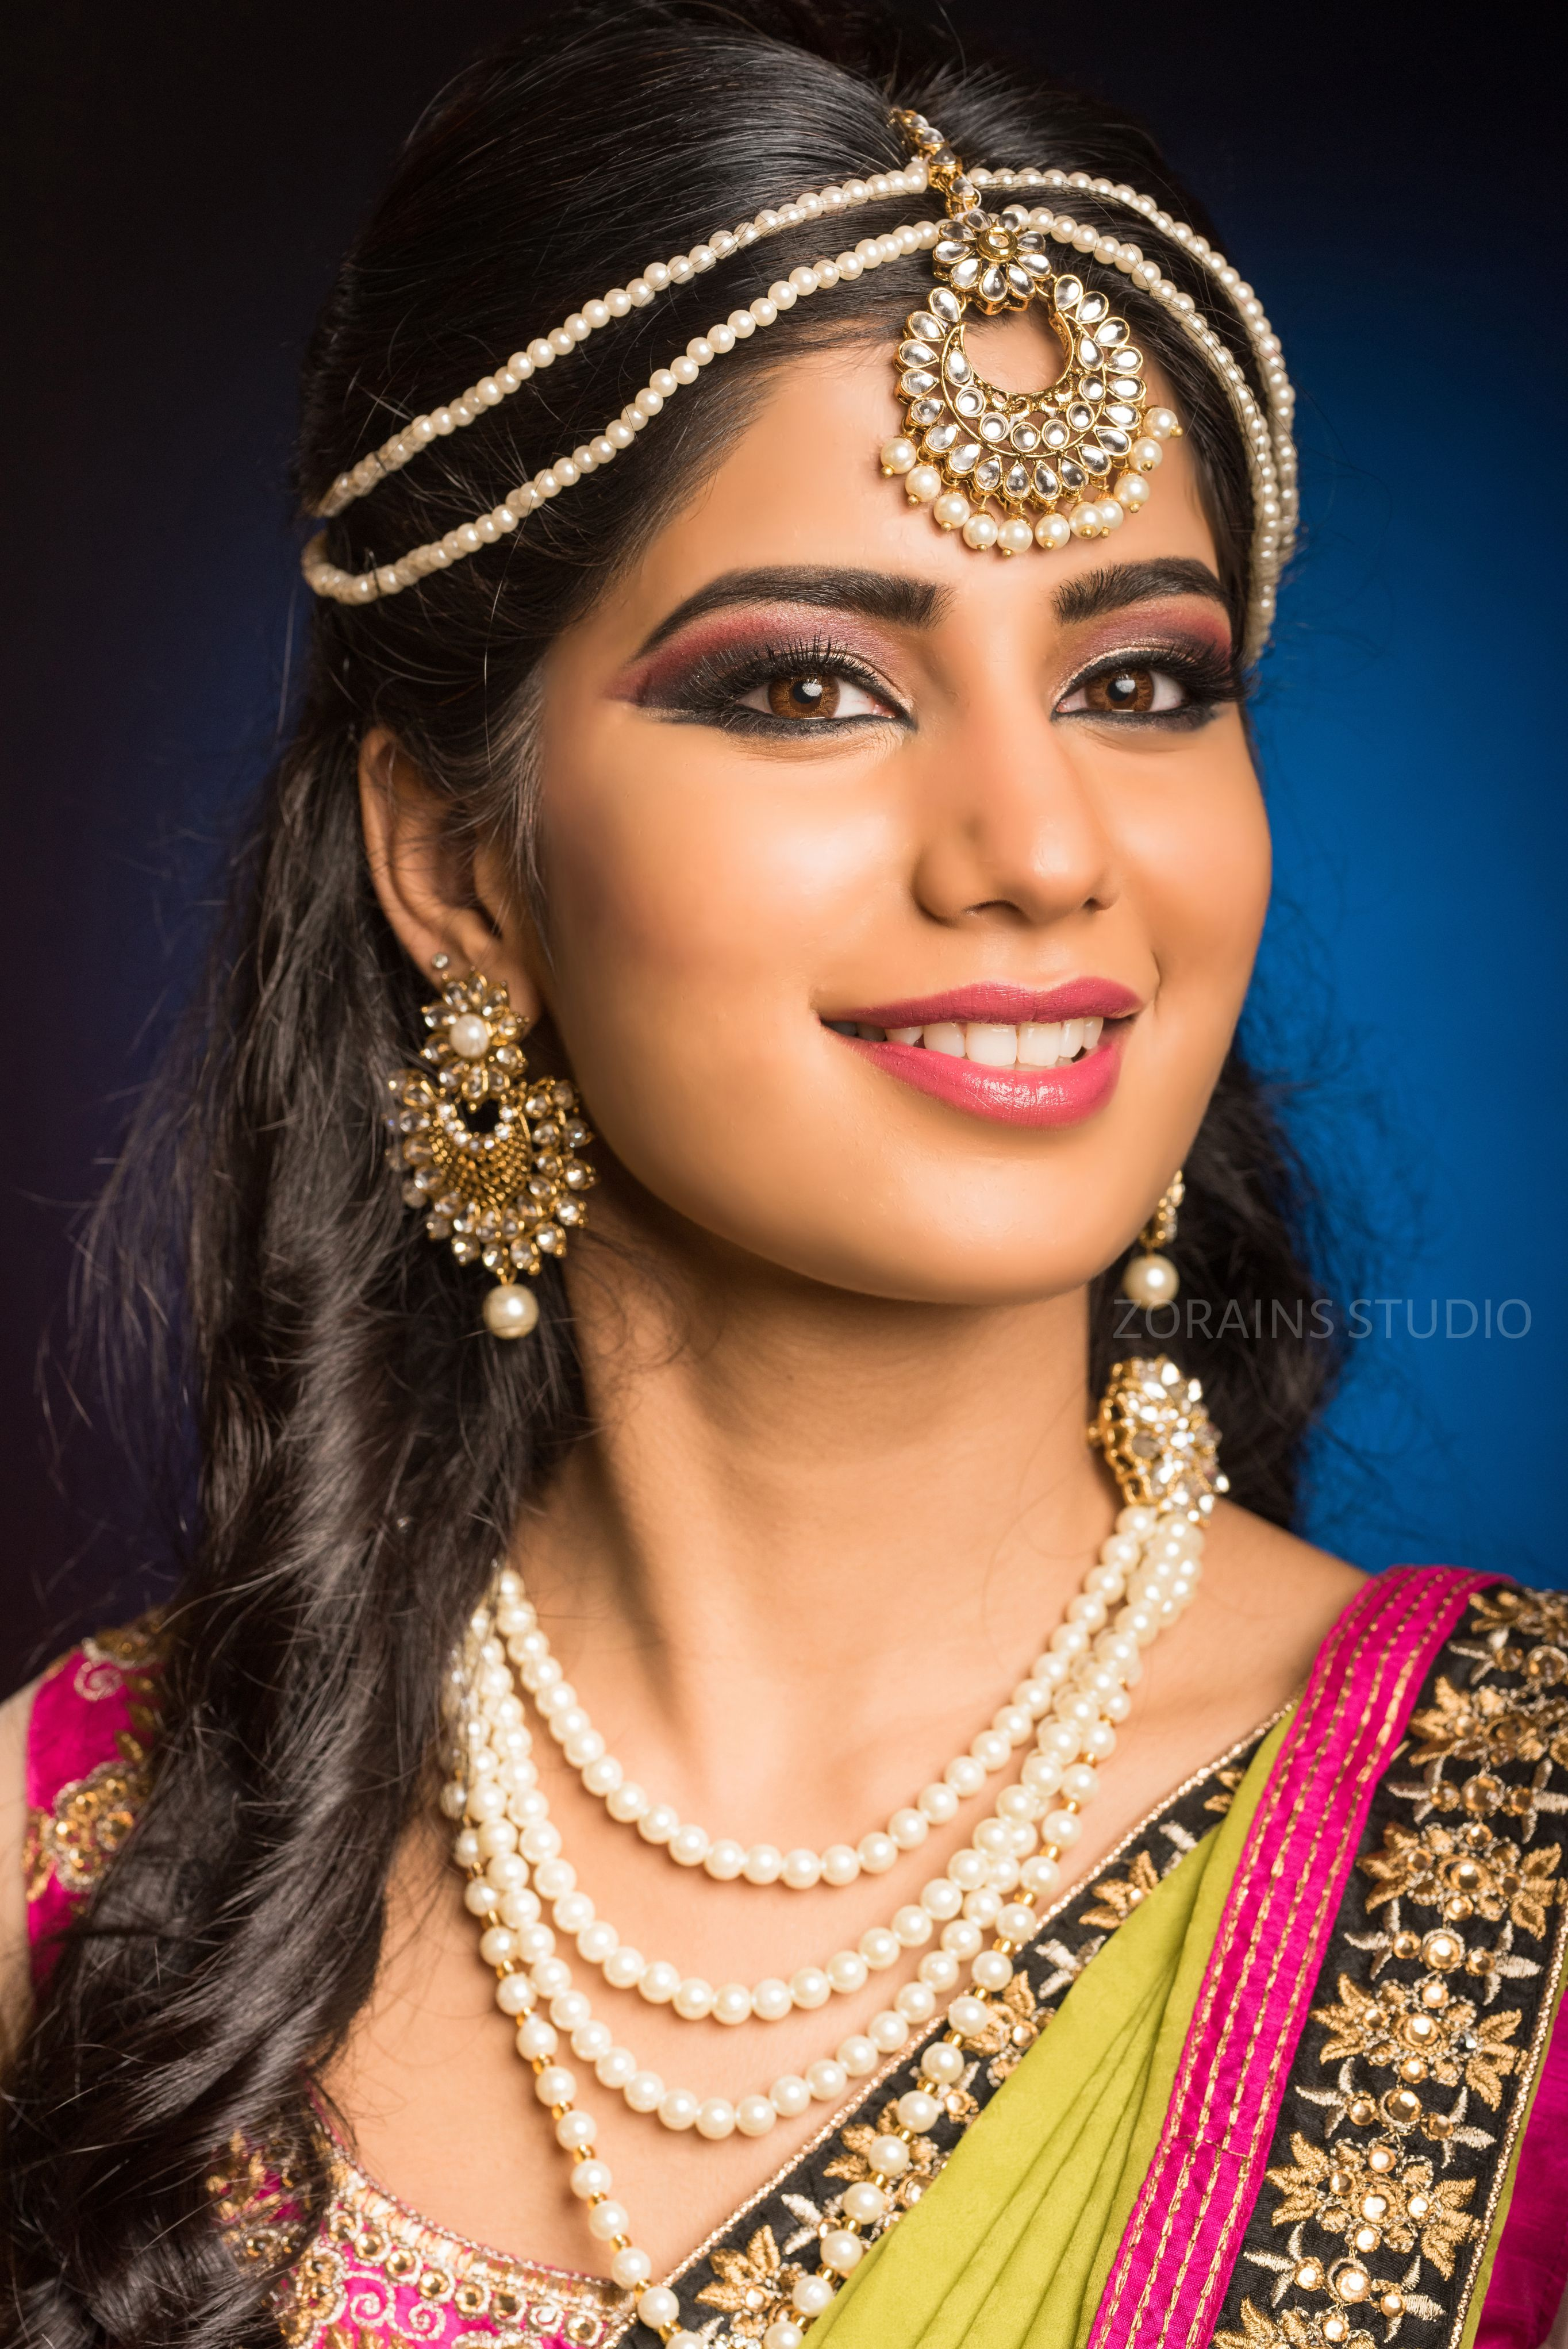 Mehendi Event Makeup in 2020 Indian bridal makeup, Event